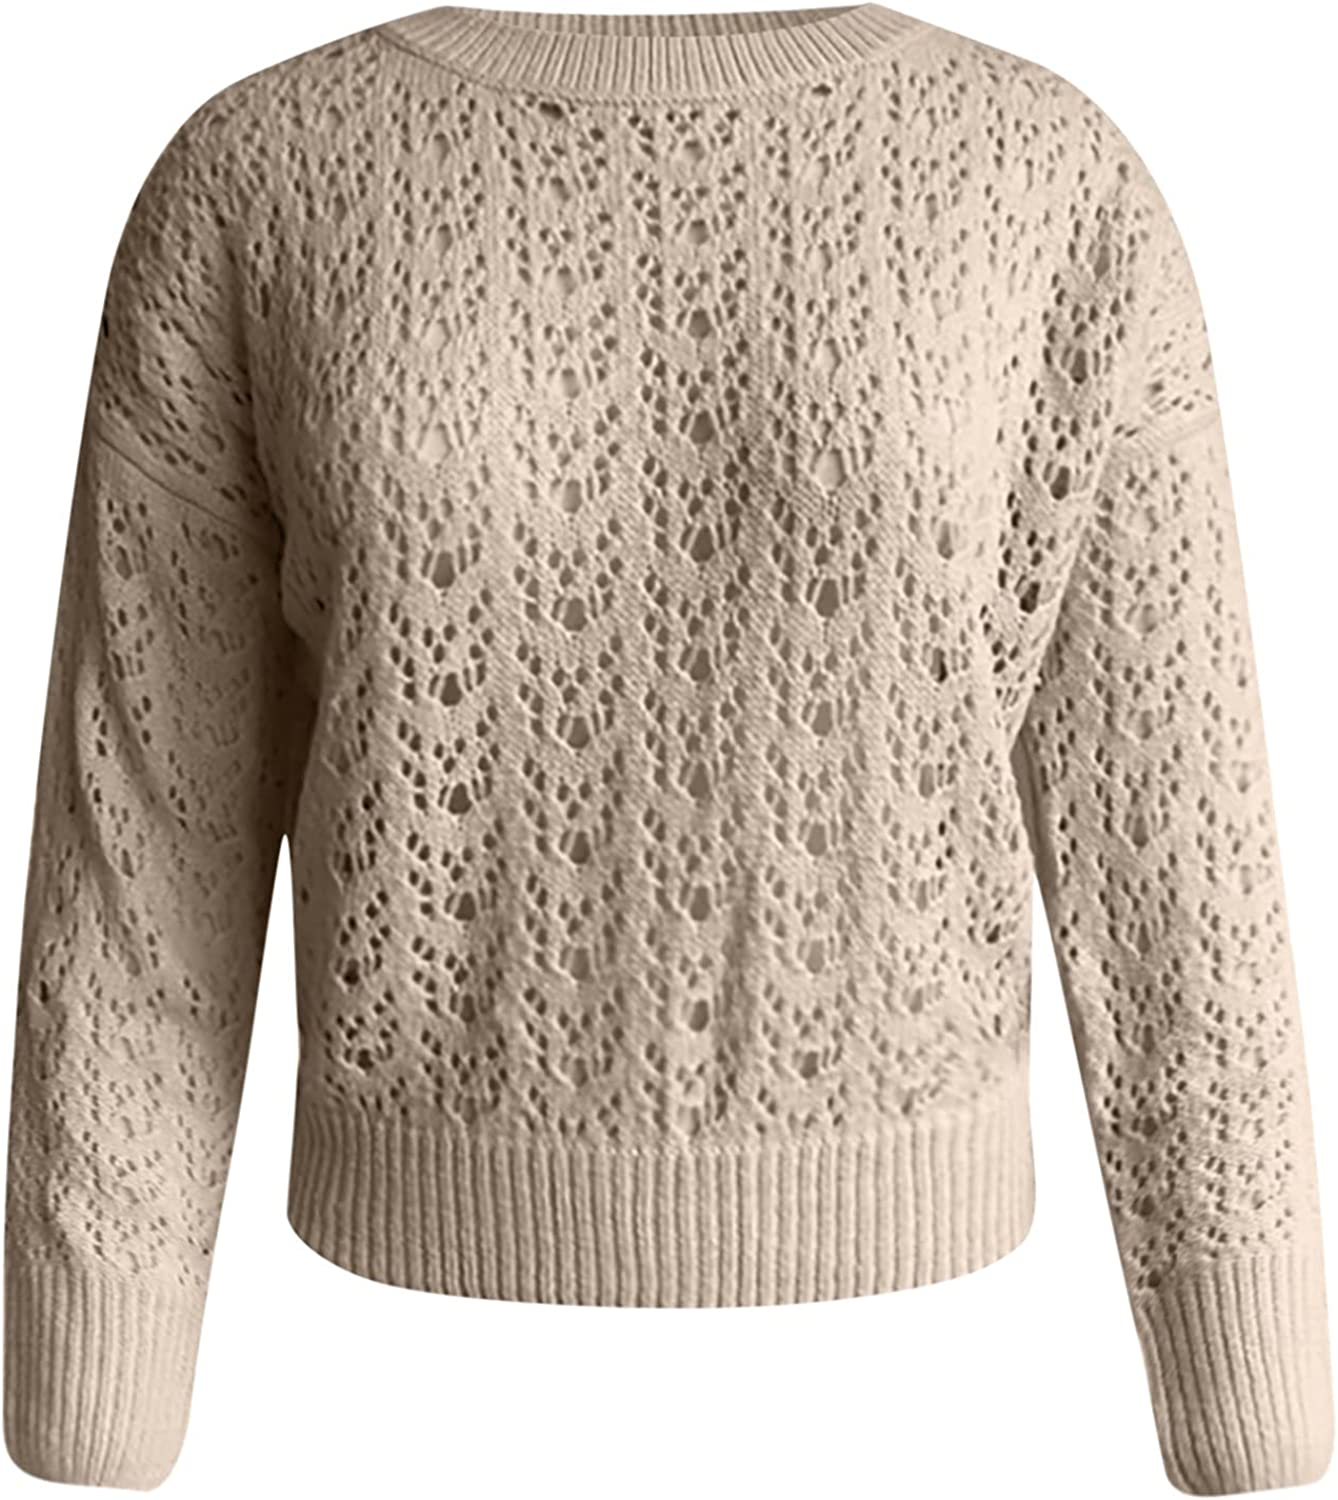 Womens Sweaters Fall Solid Crew Neck Crop Tops Casual Long Sleeve Bottoming Shirt Fashion Hollow Out Knitwear